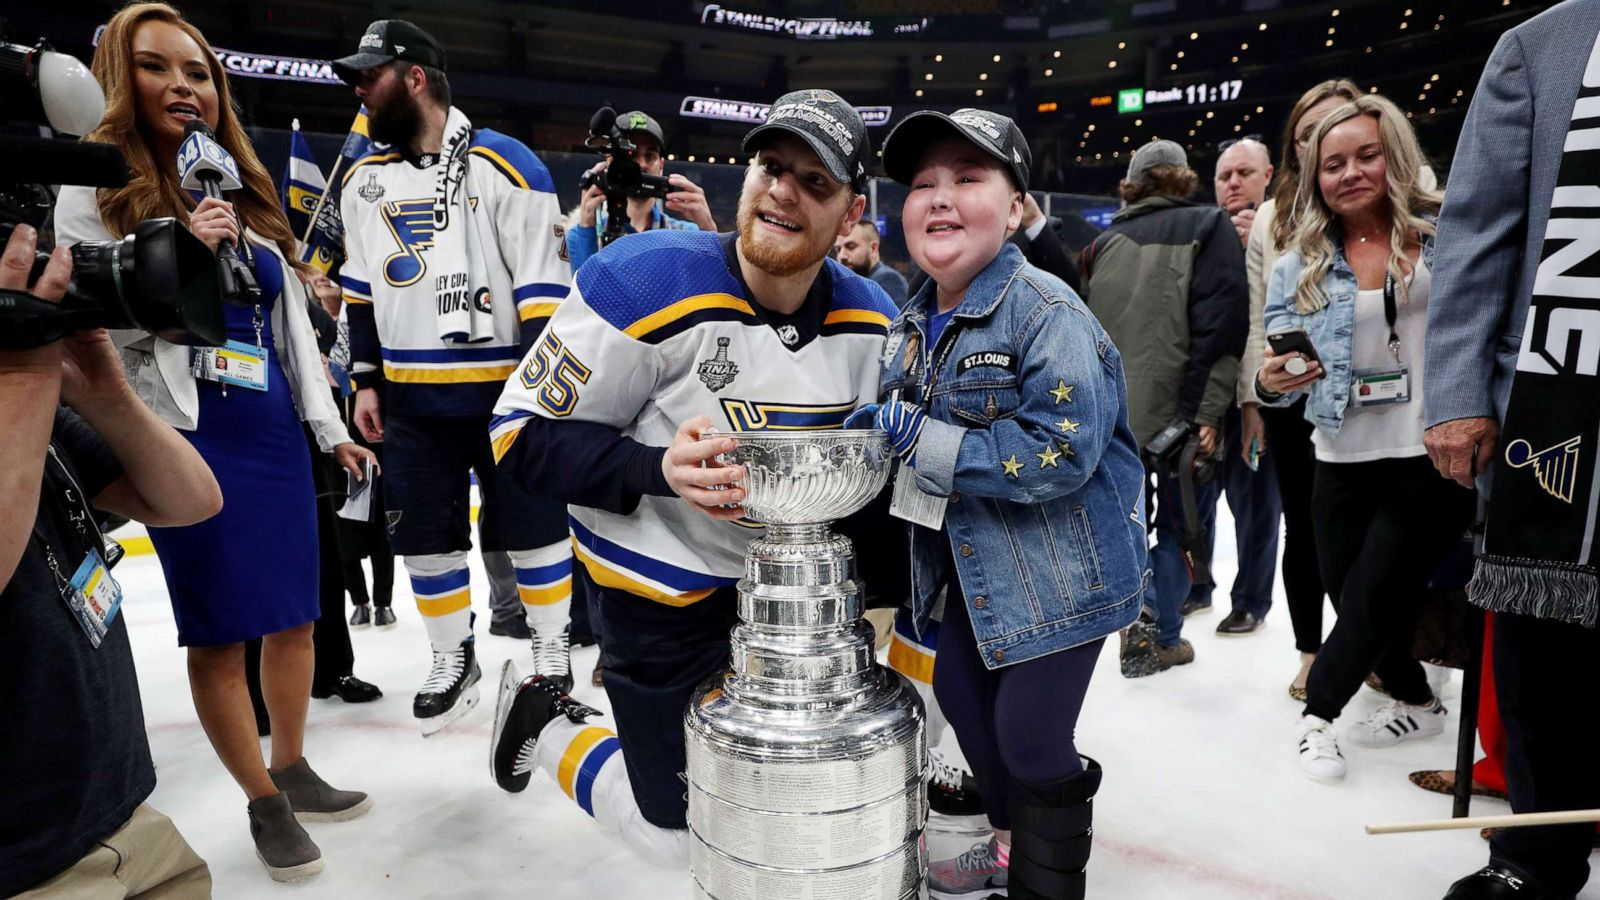 11 Year Old St Louis Blues Superfan With Rare Illness Given